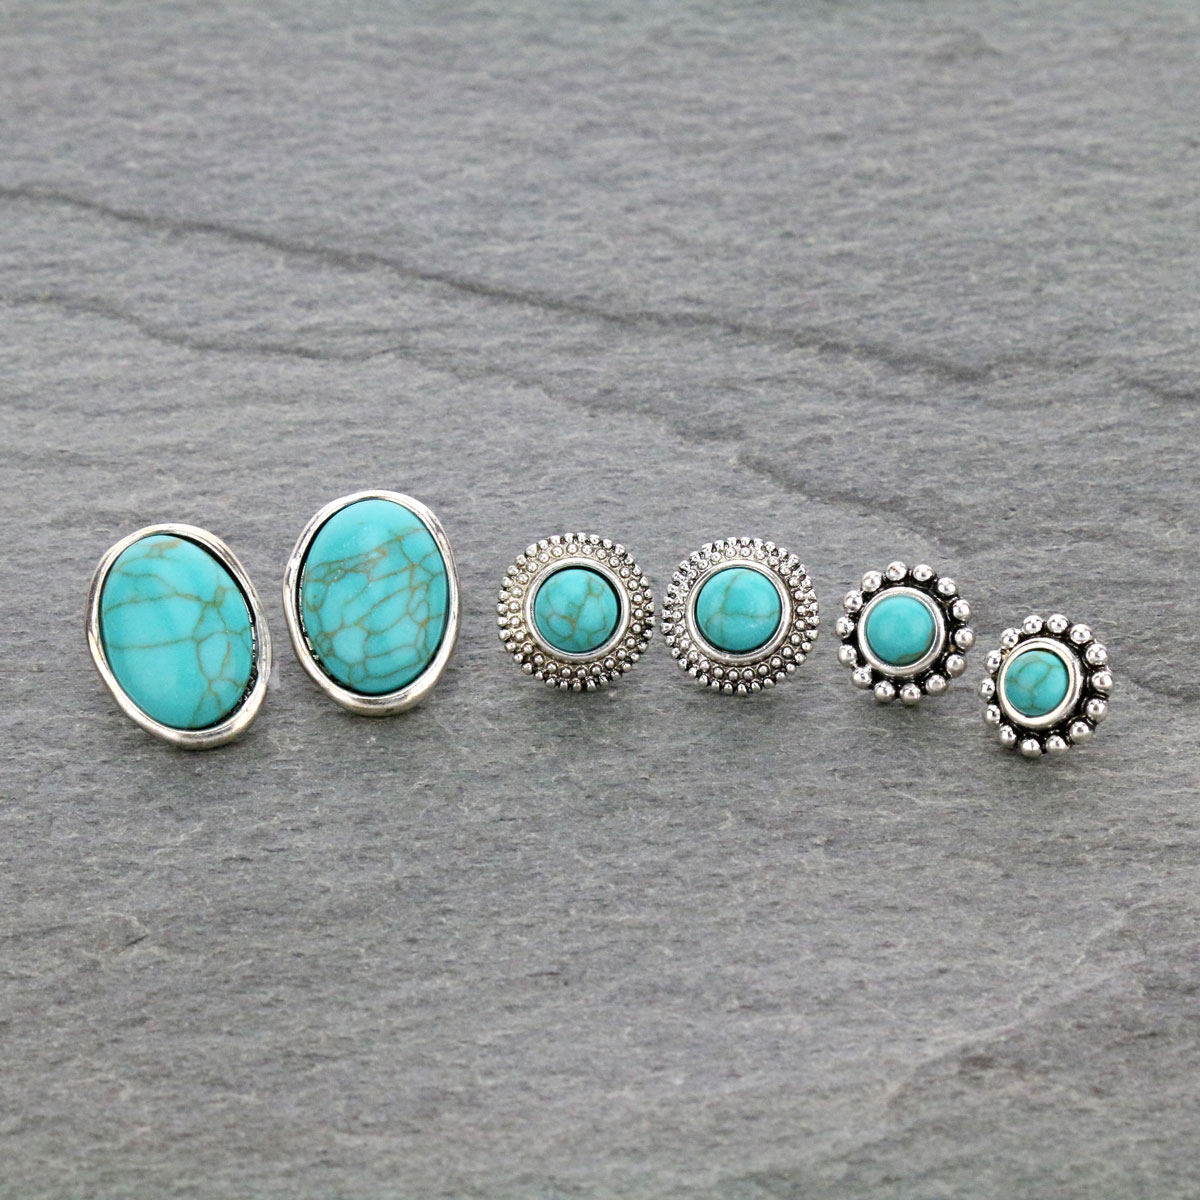 3 Pair Stone Stud Earrings Set-ER1109/TQ